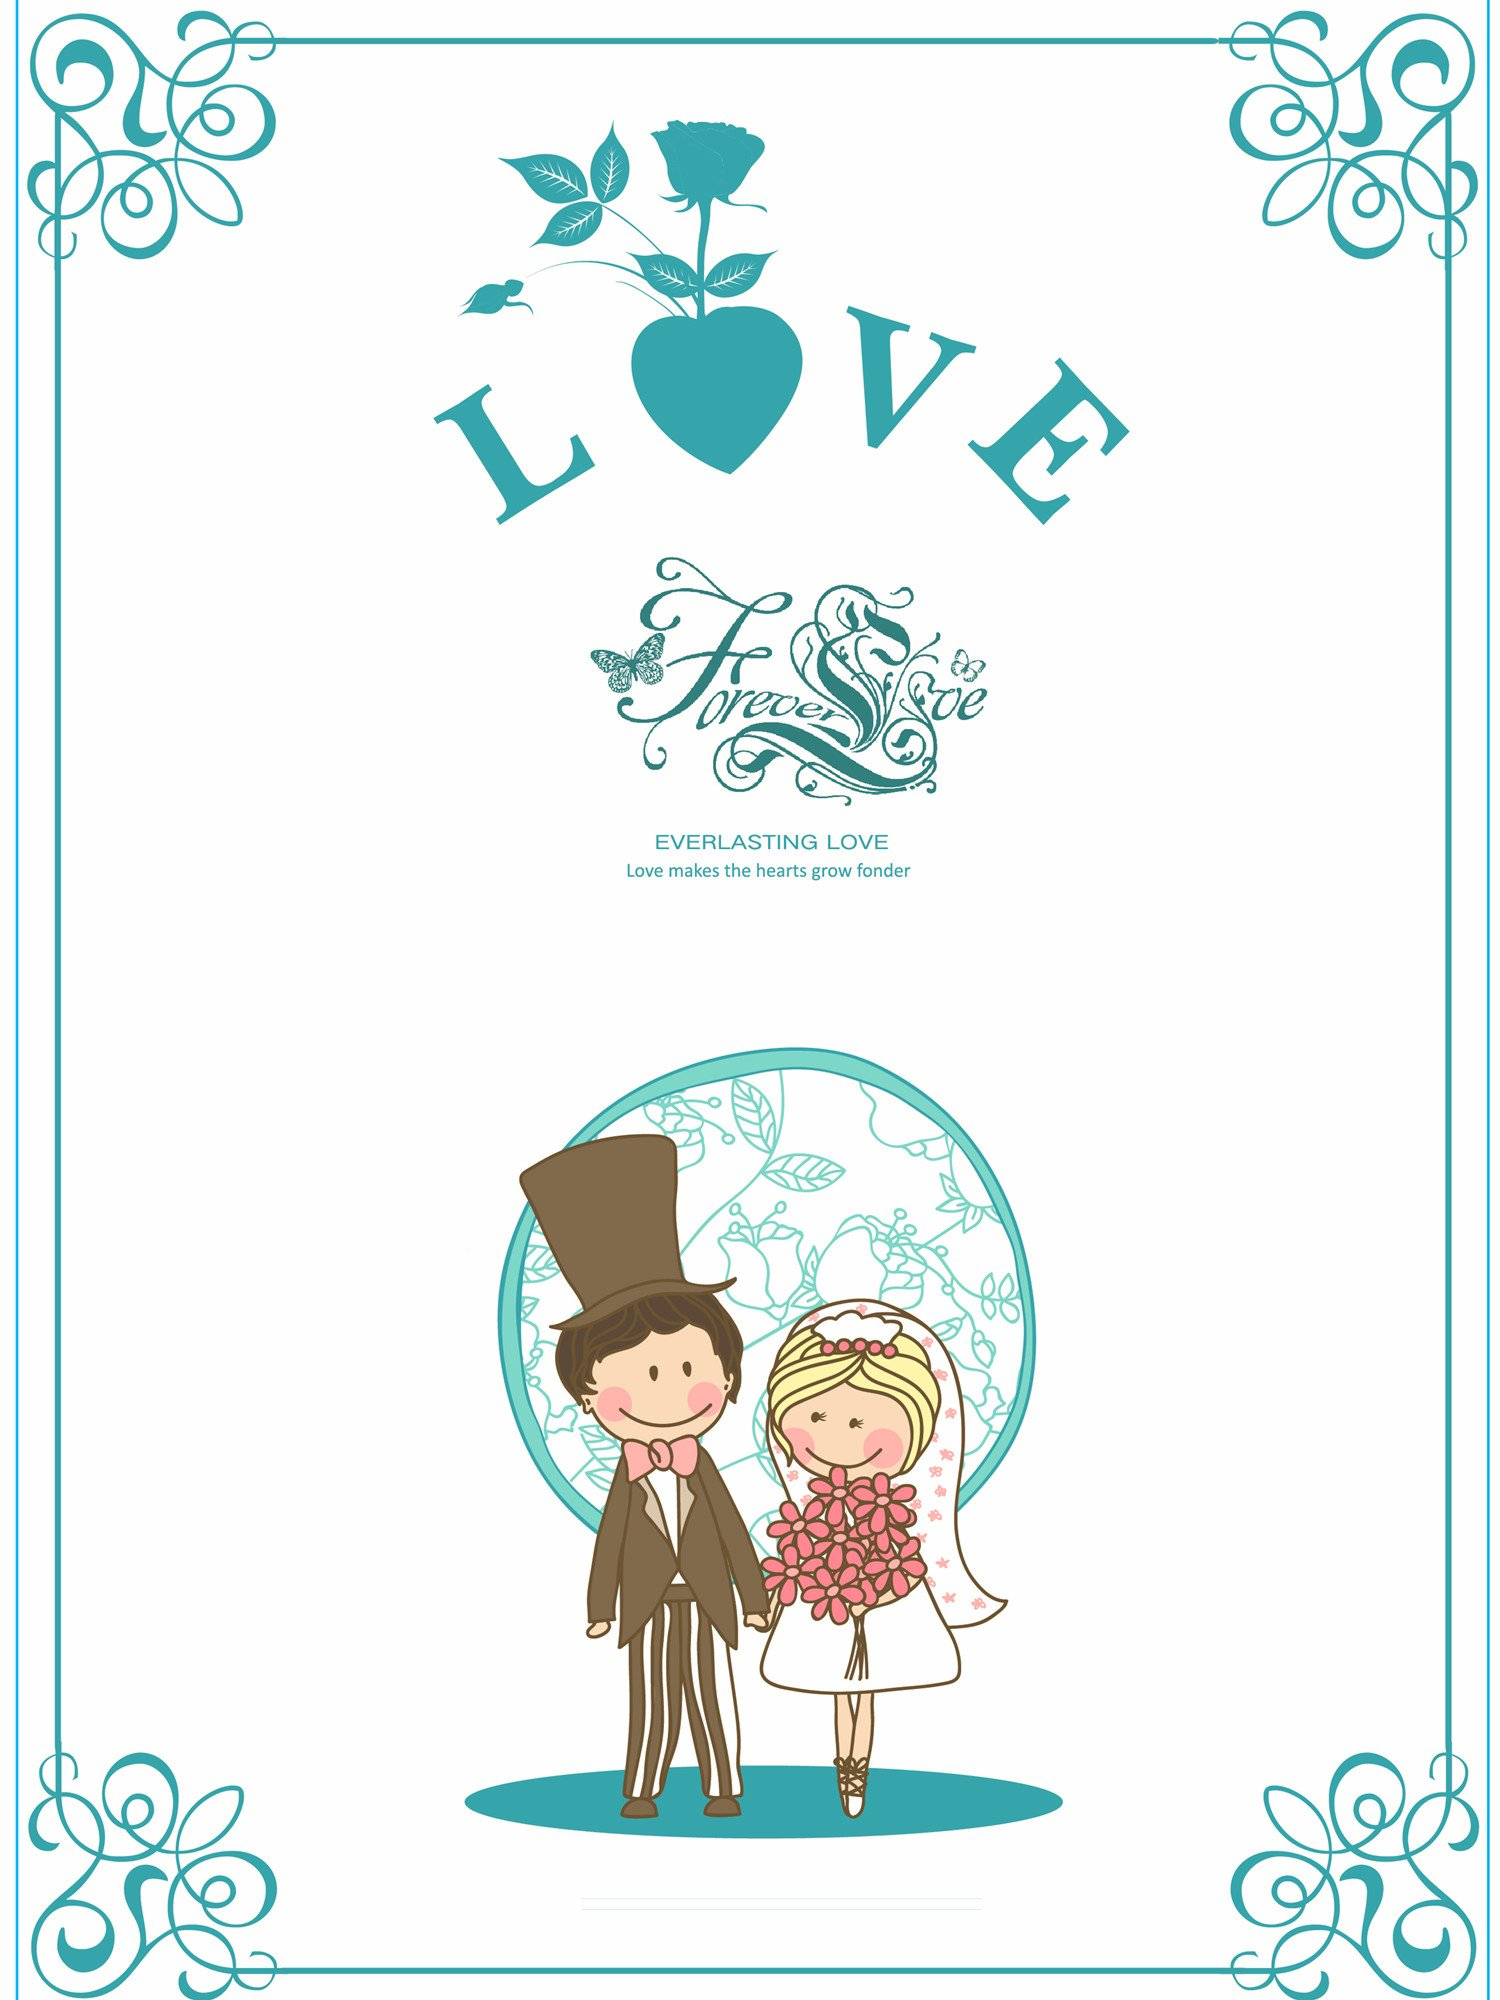 Ruimeier Love (40 Inch) and''I do'' Diamond Ring (27 Inch) Extra Large Balloon Set, Independence Day, Festival, Romantic Wedding, Bridal Shower, Anniversary, Party Decor, Vow Renewal (Golden) H007 by Ruimeier (Image #6)